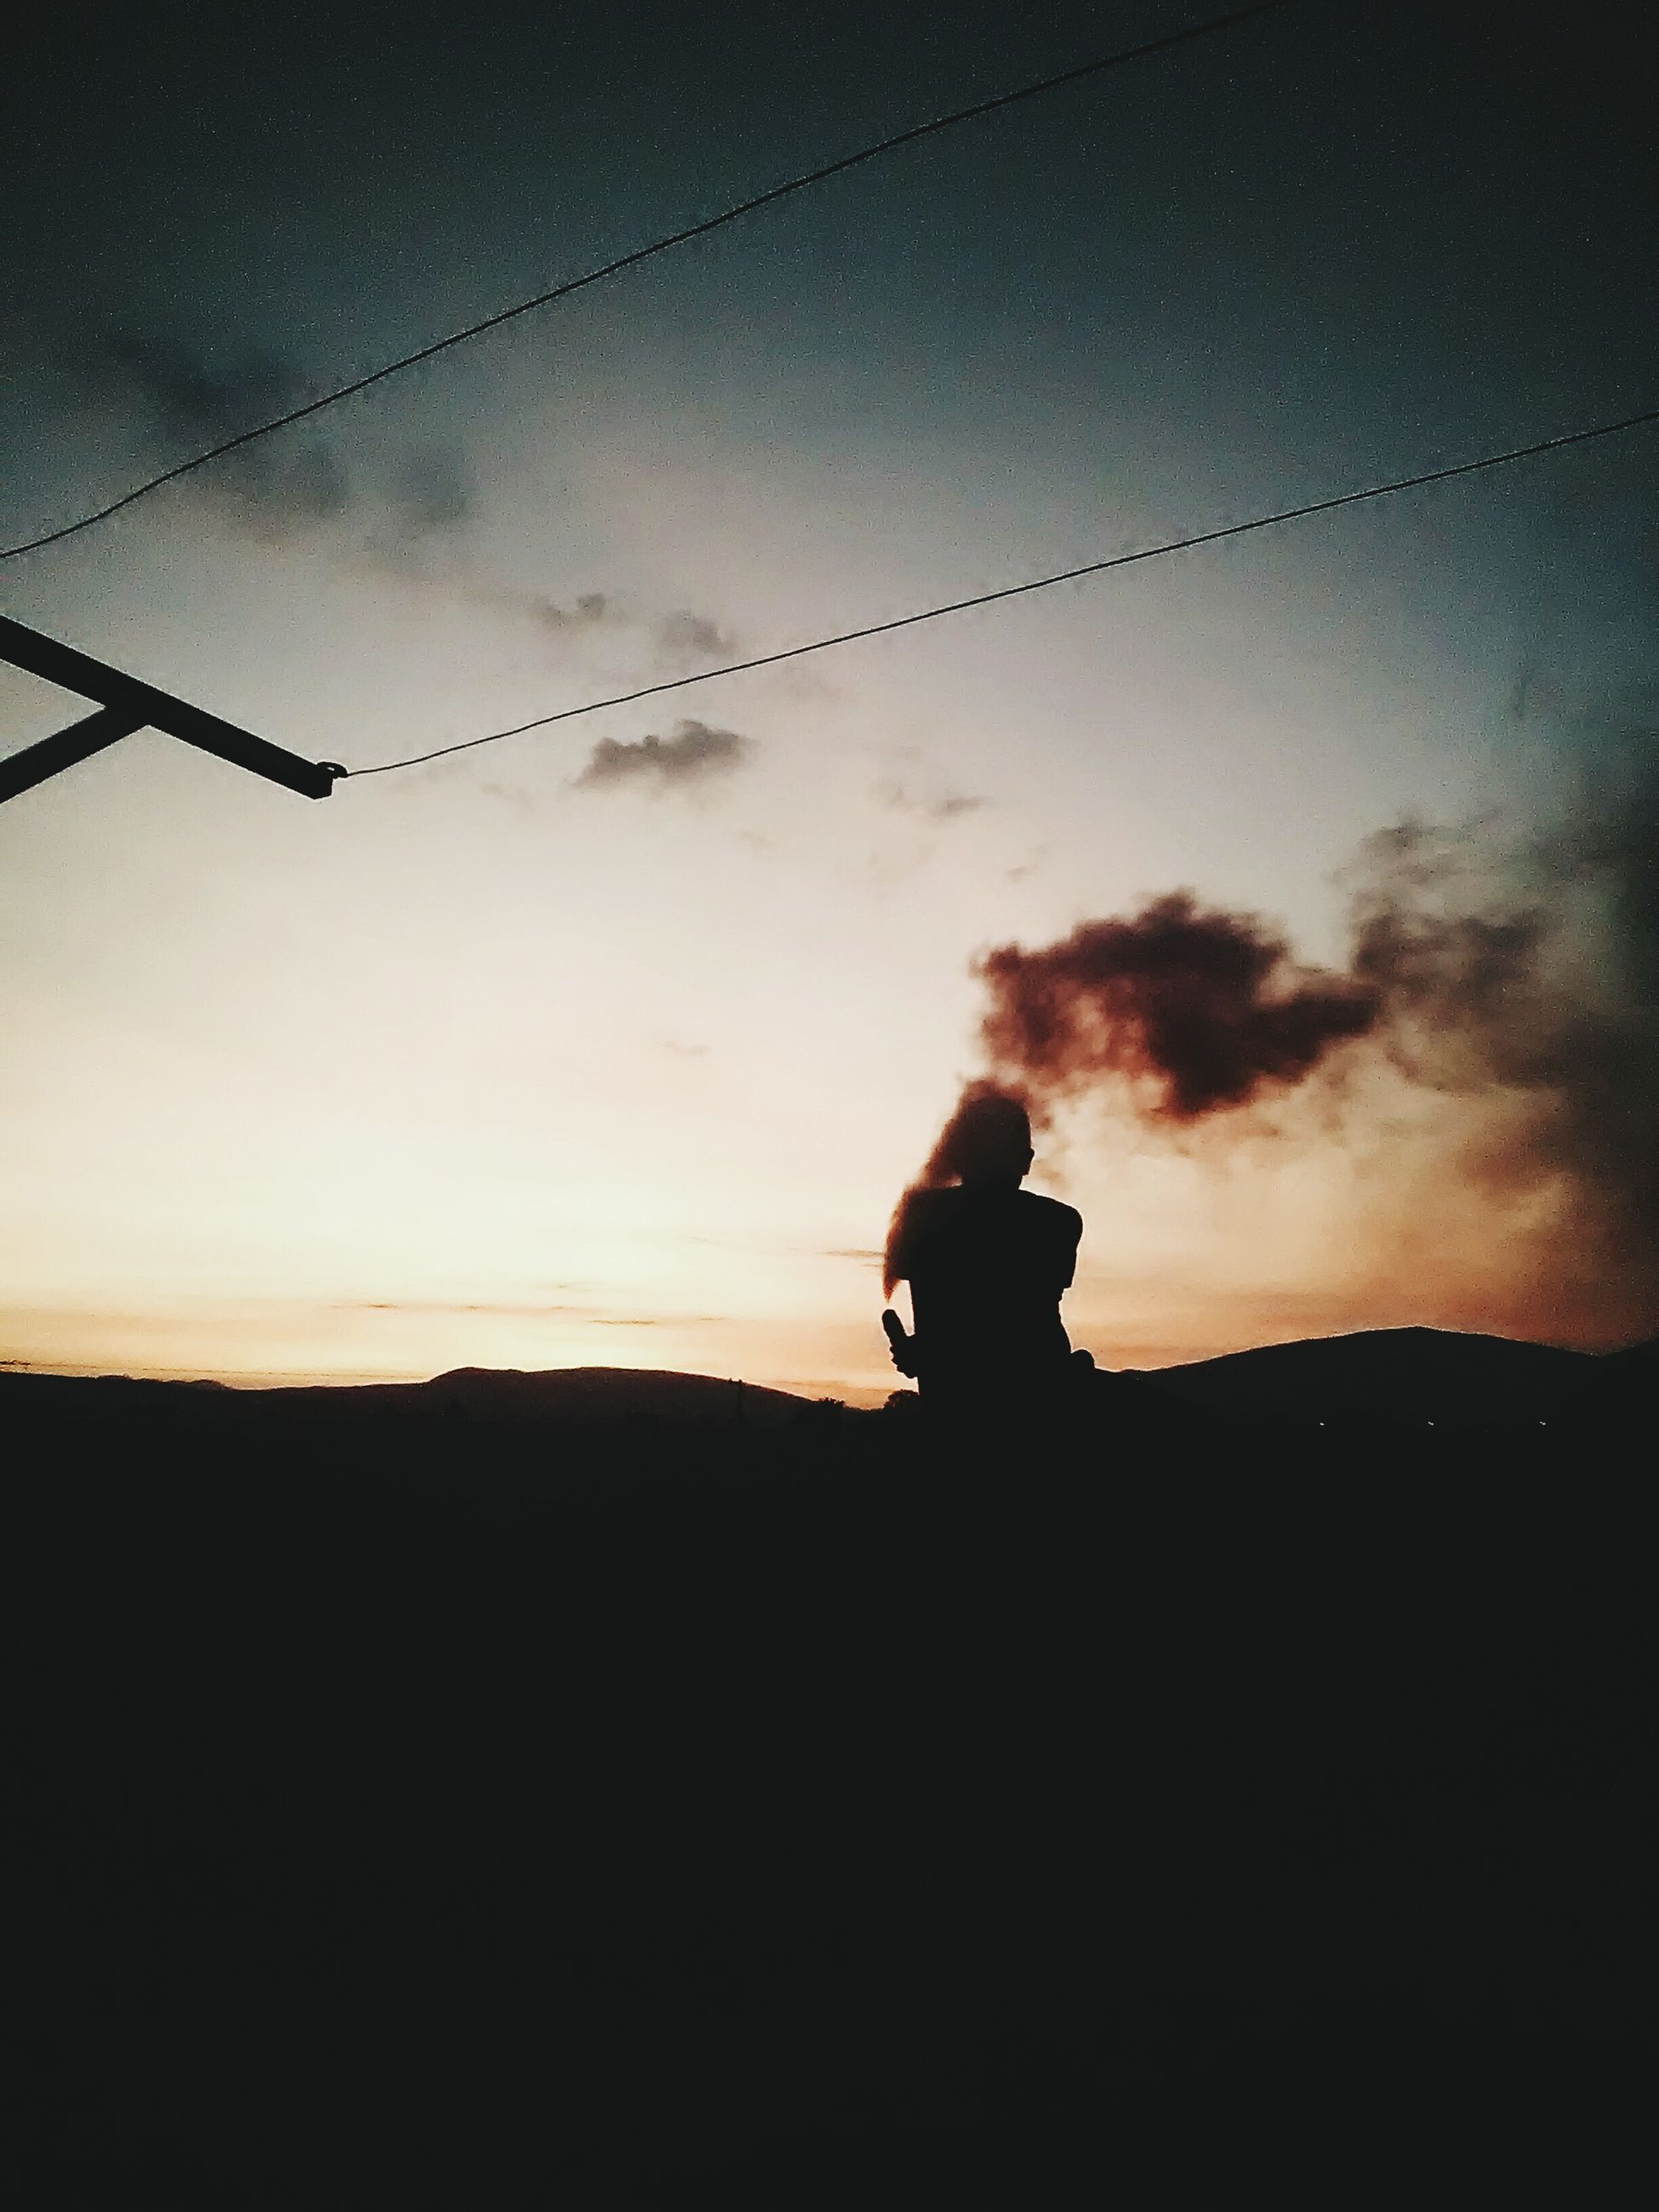 silhouette, sunset, sky, real people, nature, one person, leisure activity, beauty in nature, men, standing, outdoors, landscape, scenics, sitting, day, people